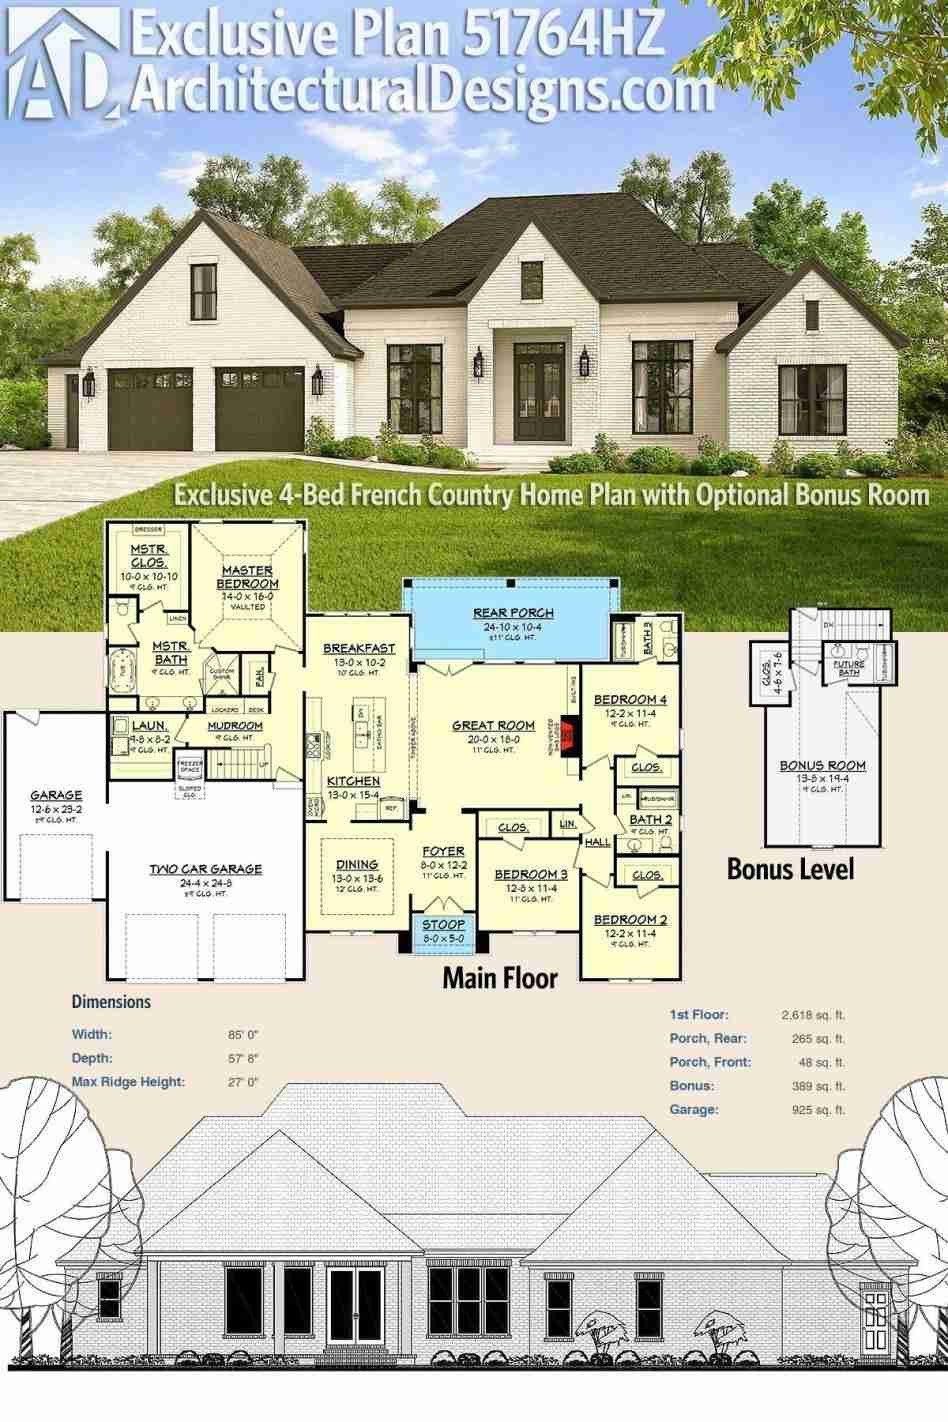 House Plans with Front Porch Beautiful Bedroom House Plans with Front Porch Home Plan Dormer